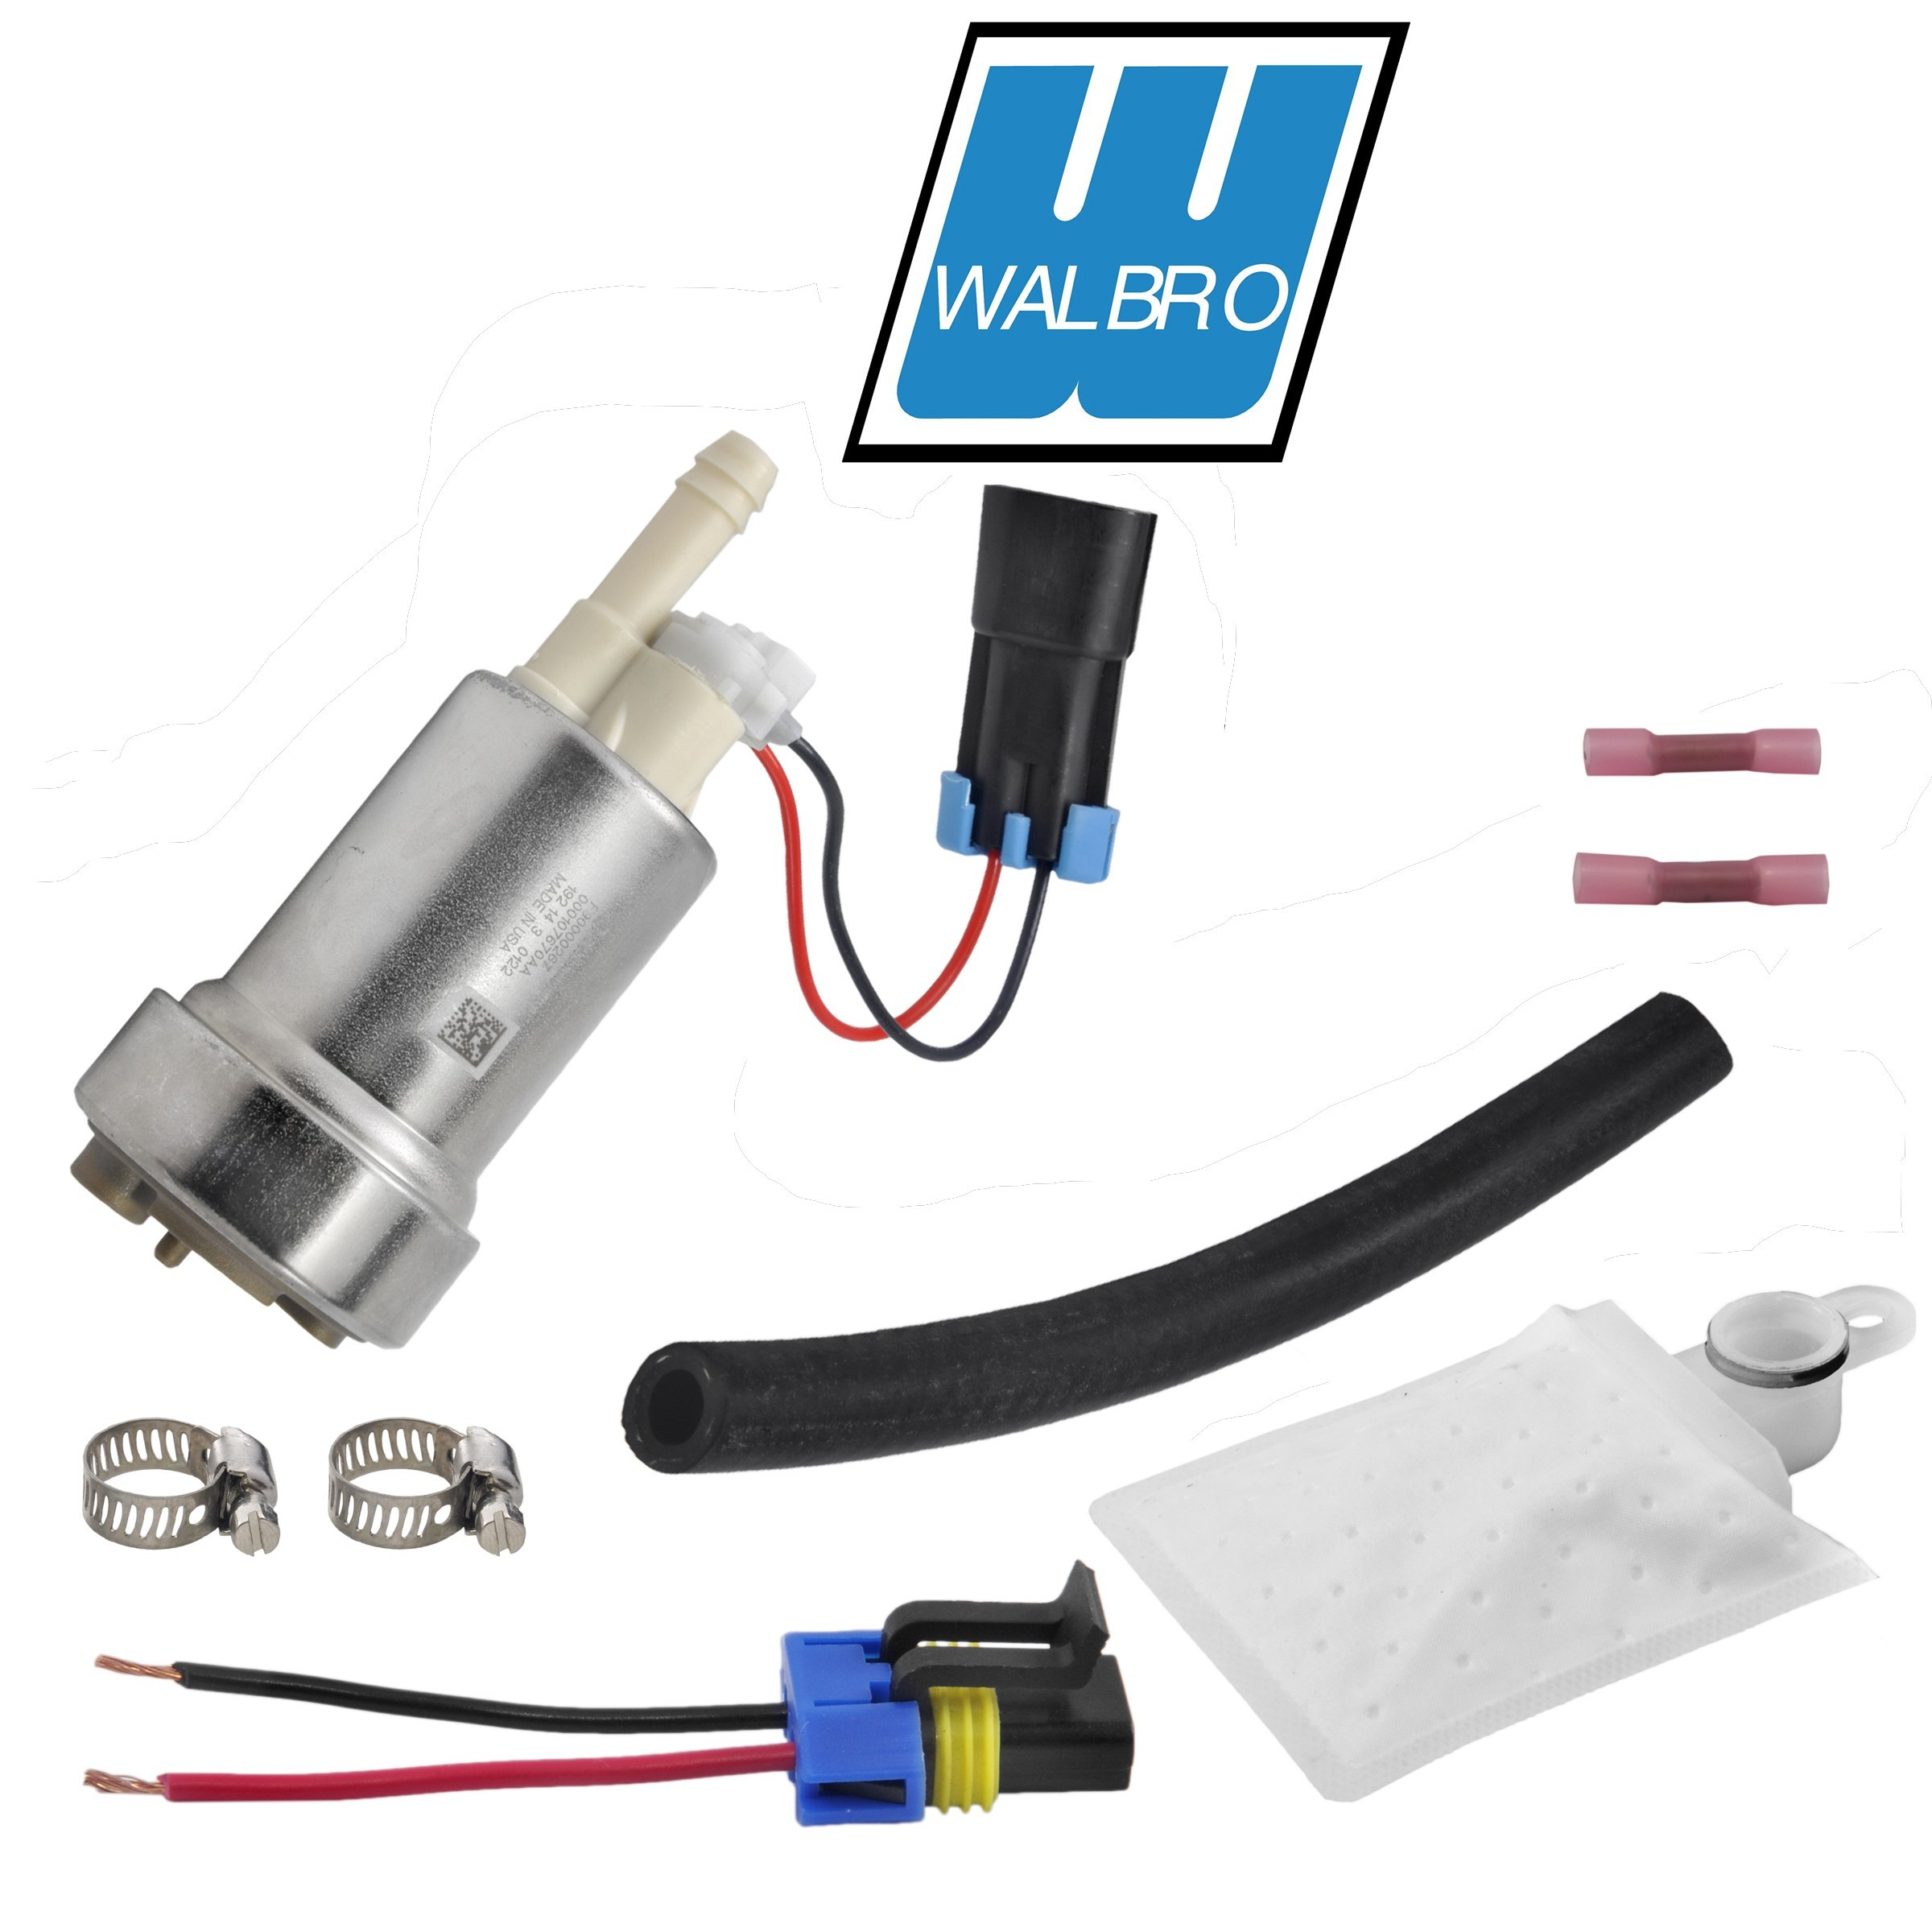 Walbro Fuel Pump - Product Image